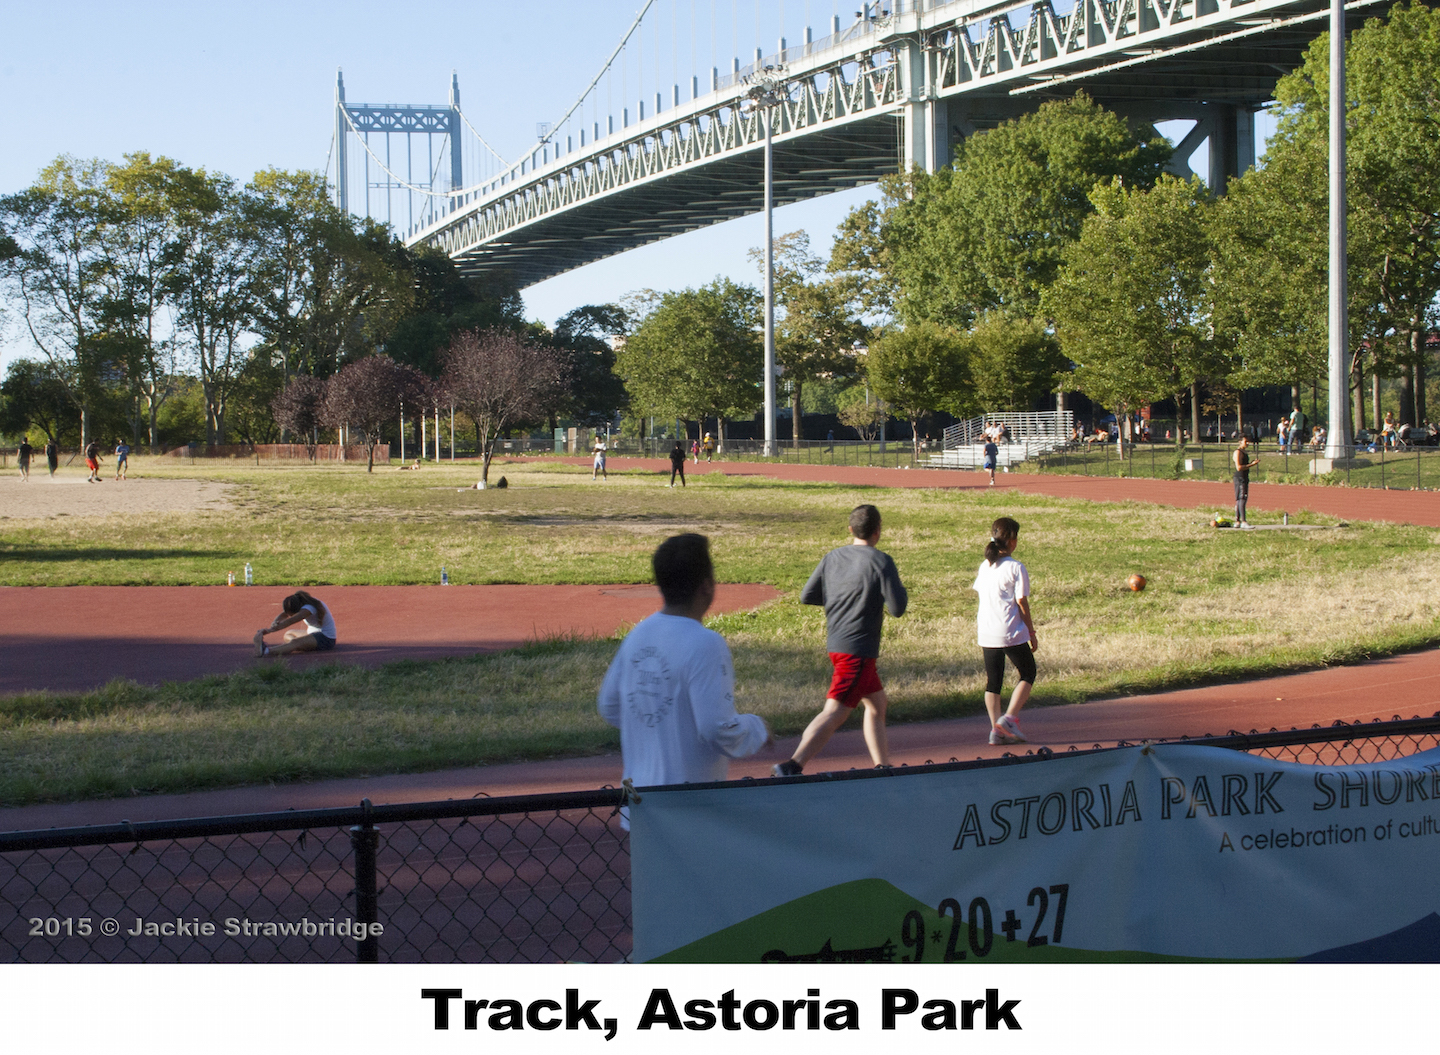 NYC To invest $150 Million in 5 City Parks